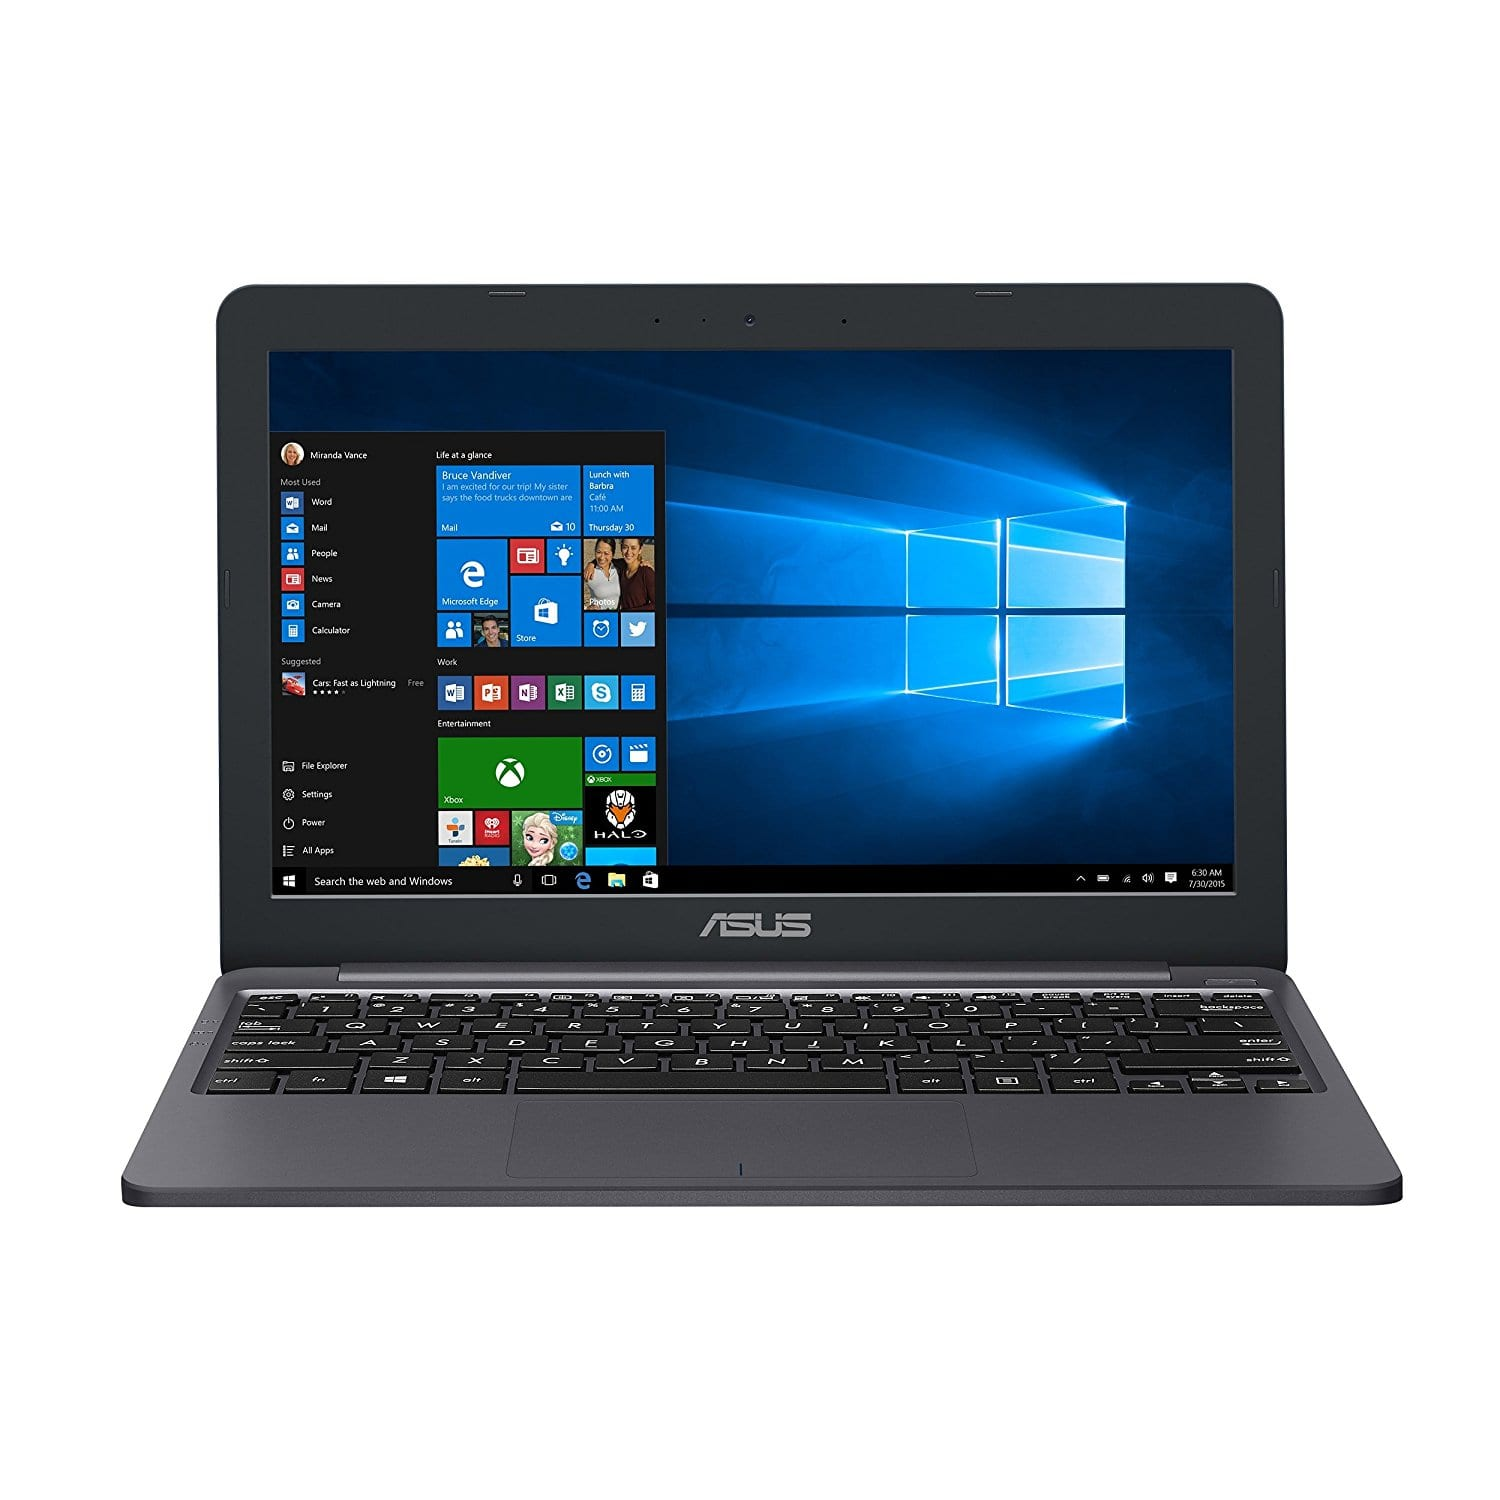 "ASUS VivoBook E203NA-YS03 11.6"" Featherweight design Laptop, Intel Dual-Core Celeron N3350 2.4GHz processor, 4GB DDR3 RAM, 64GB EMMC Storage, App based Windows 10 S $199 Amazon"